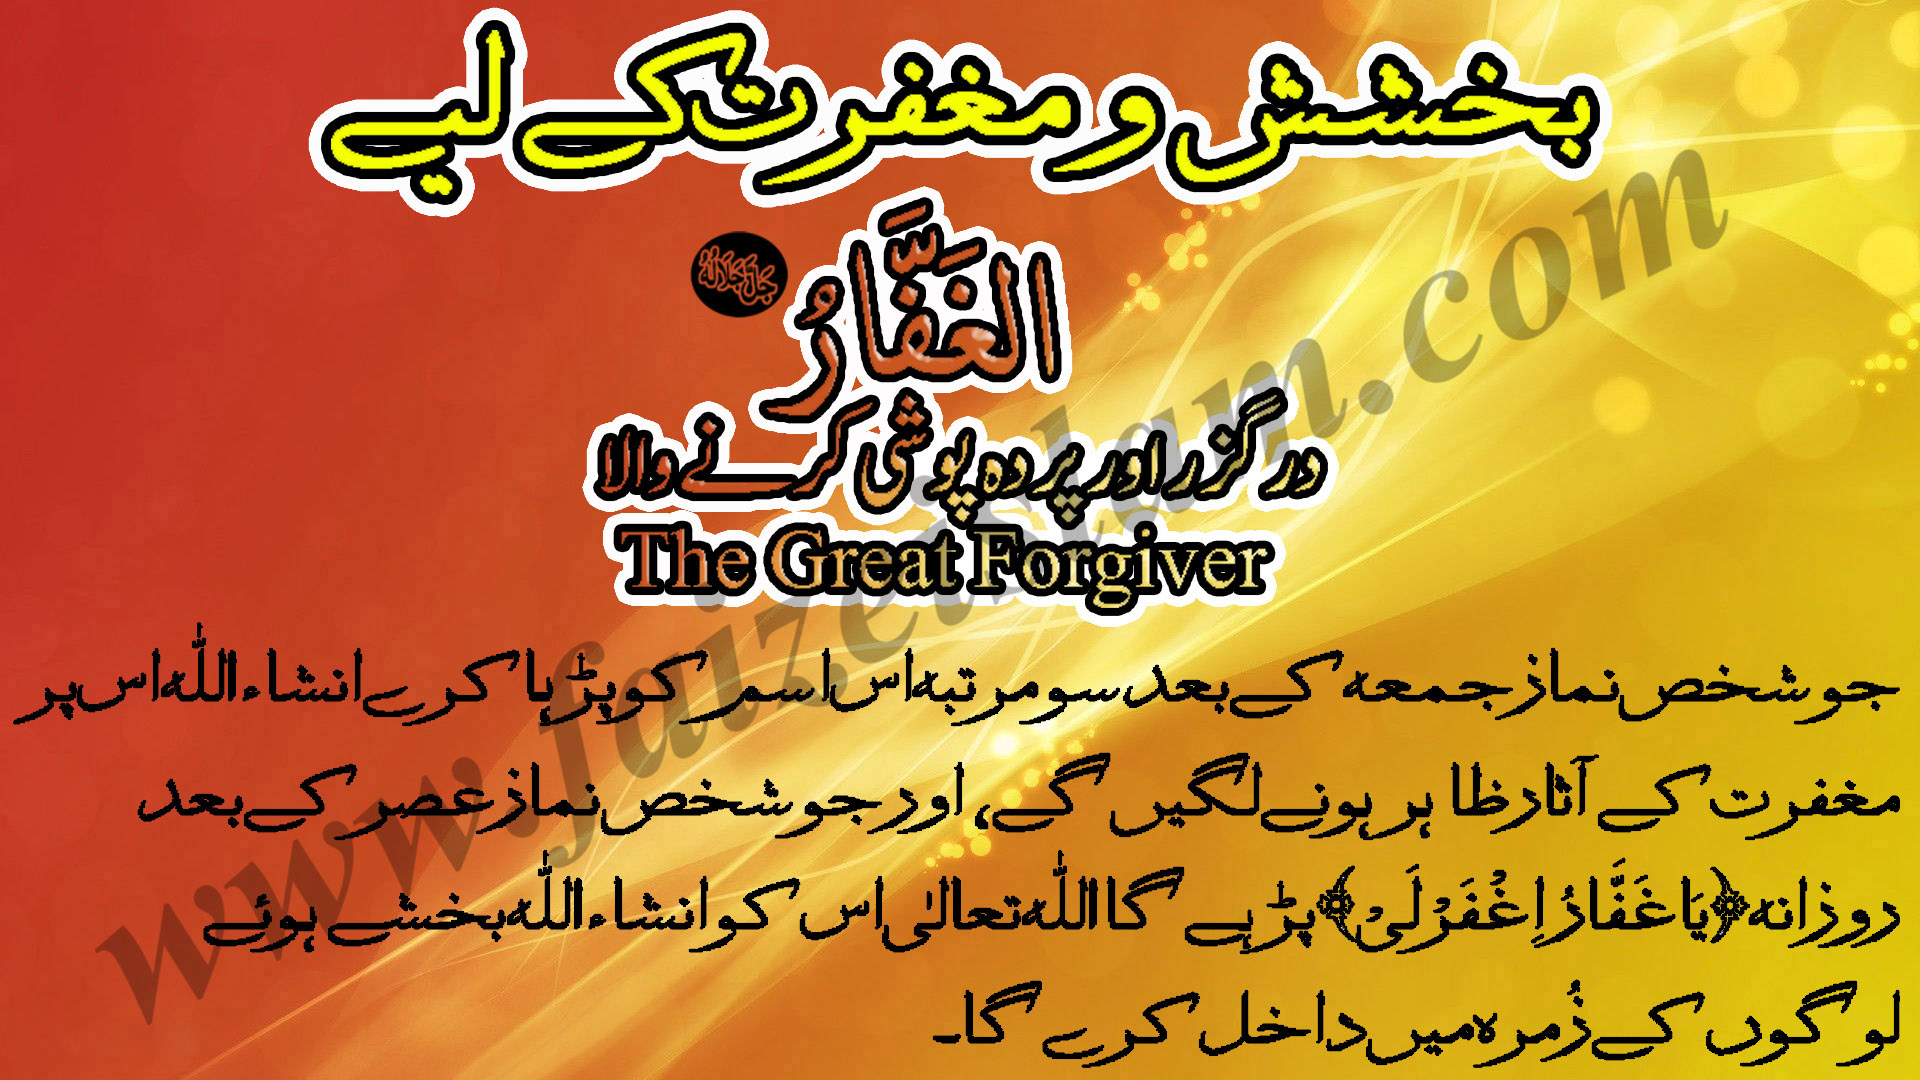 Photo of Bakhshish o Maghfirat Ke Liye Wazaif In Urdu